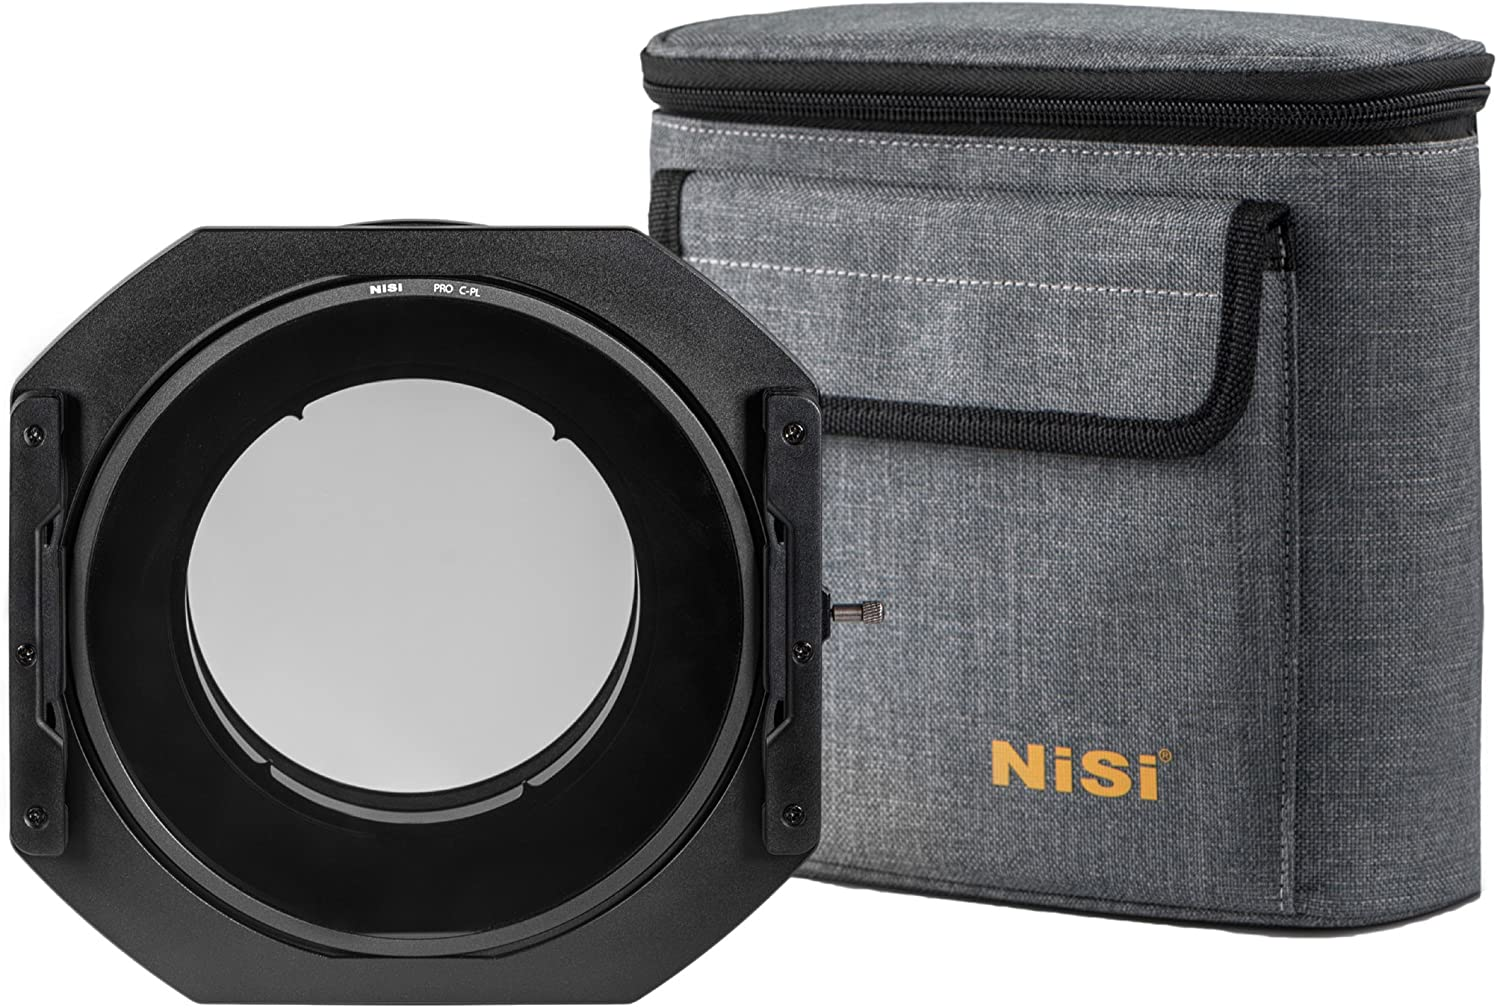 NiSi S5 Kit 150mm Filter Holder with CPL for Sigma 14-24mm f/2.8 DG HSM Art